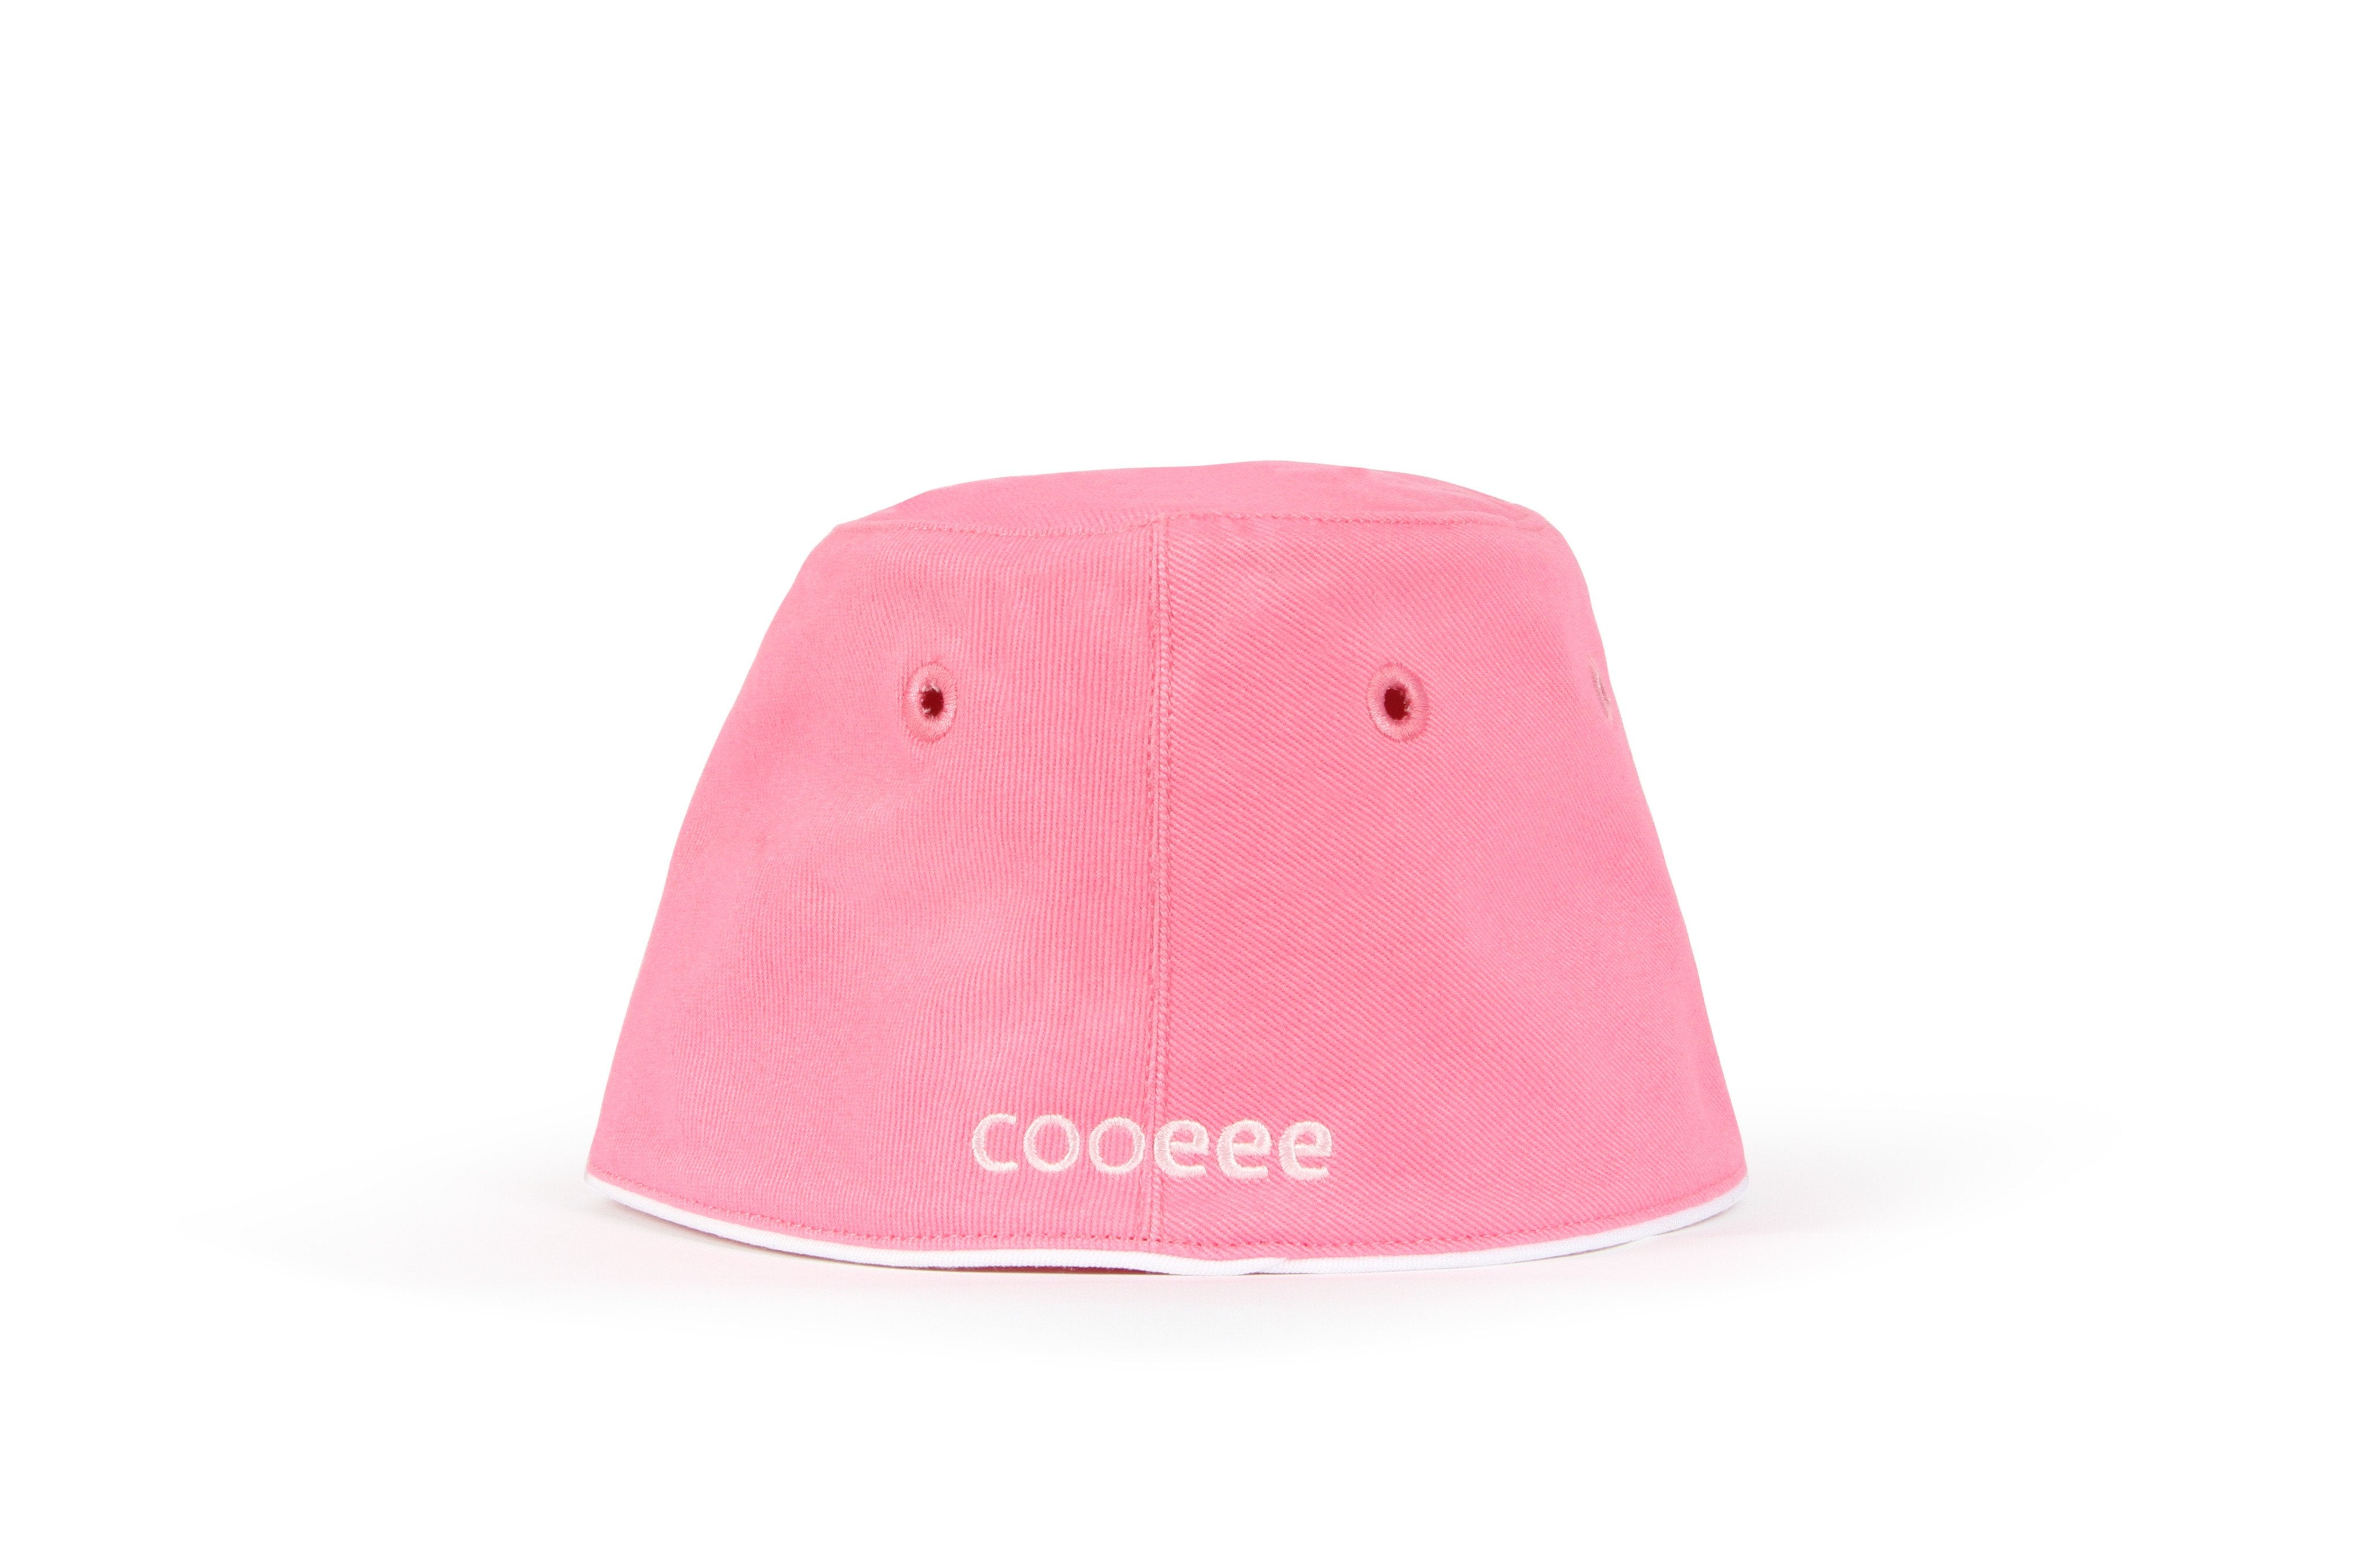 COOEEE Fairy Sunglasses Hat Pink with Pink Lenses by Boomerang Baby Back View